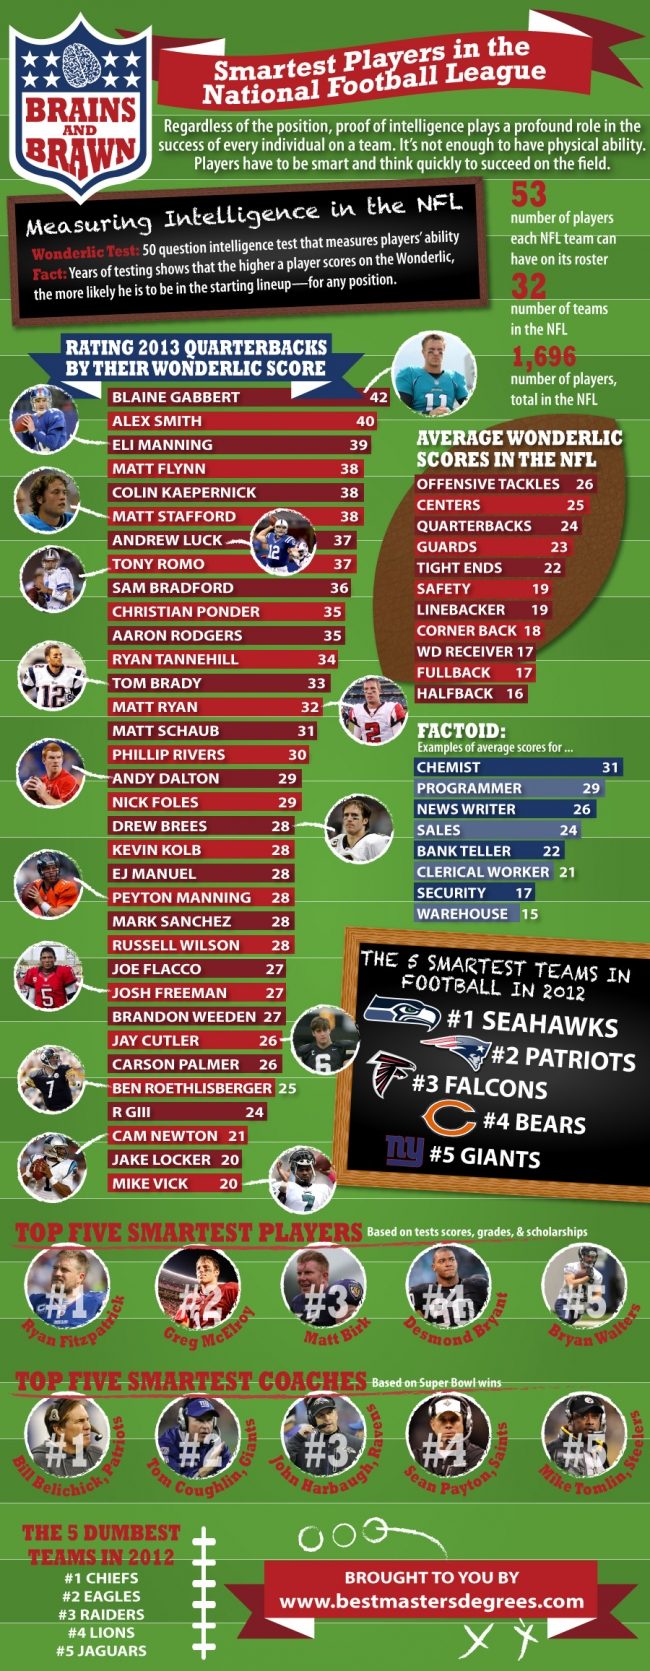 Smart NFL players ad coaches